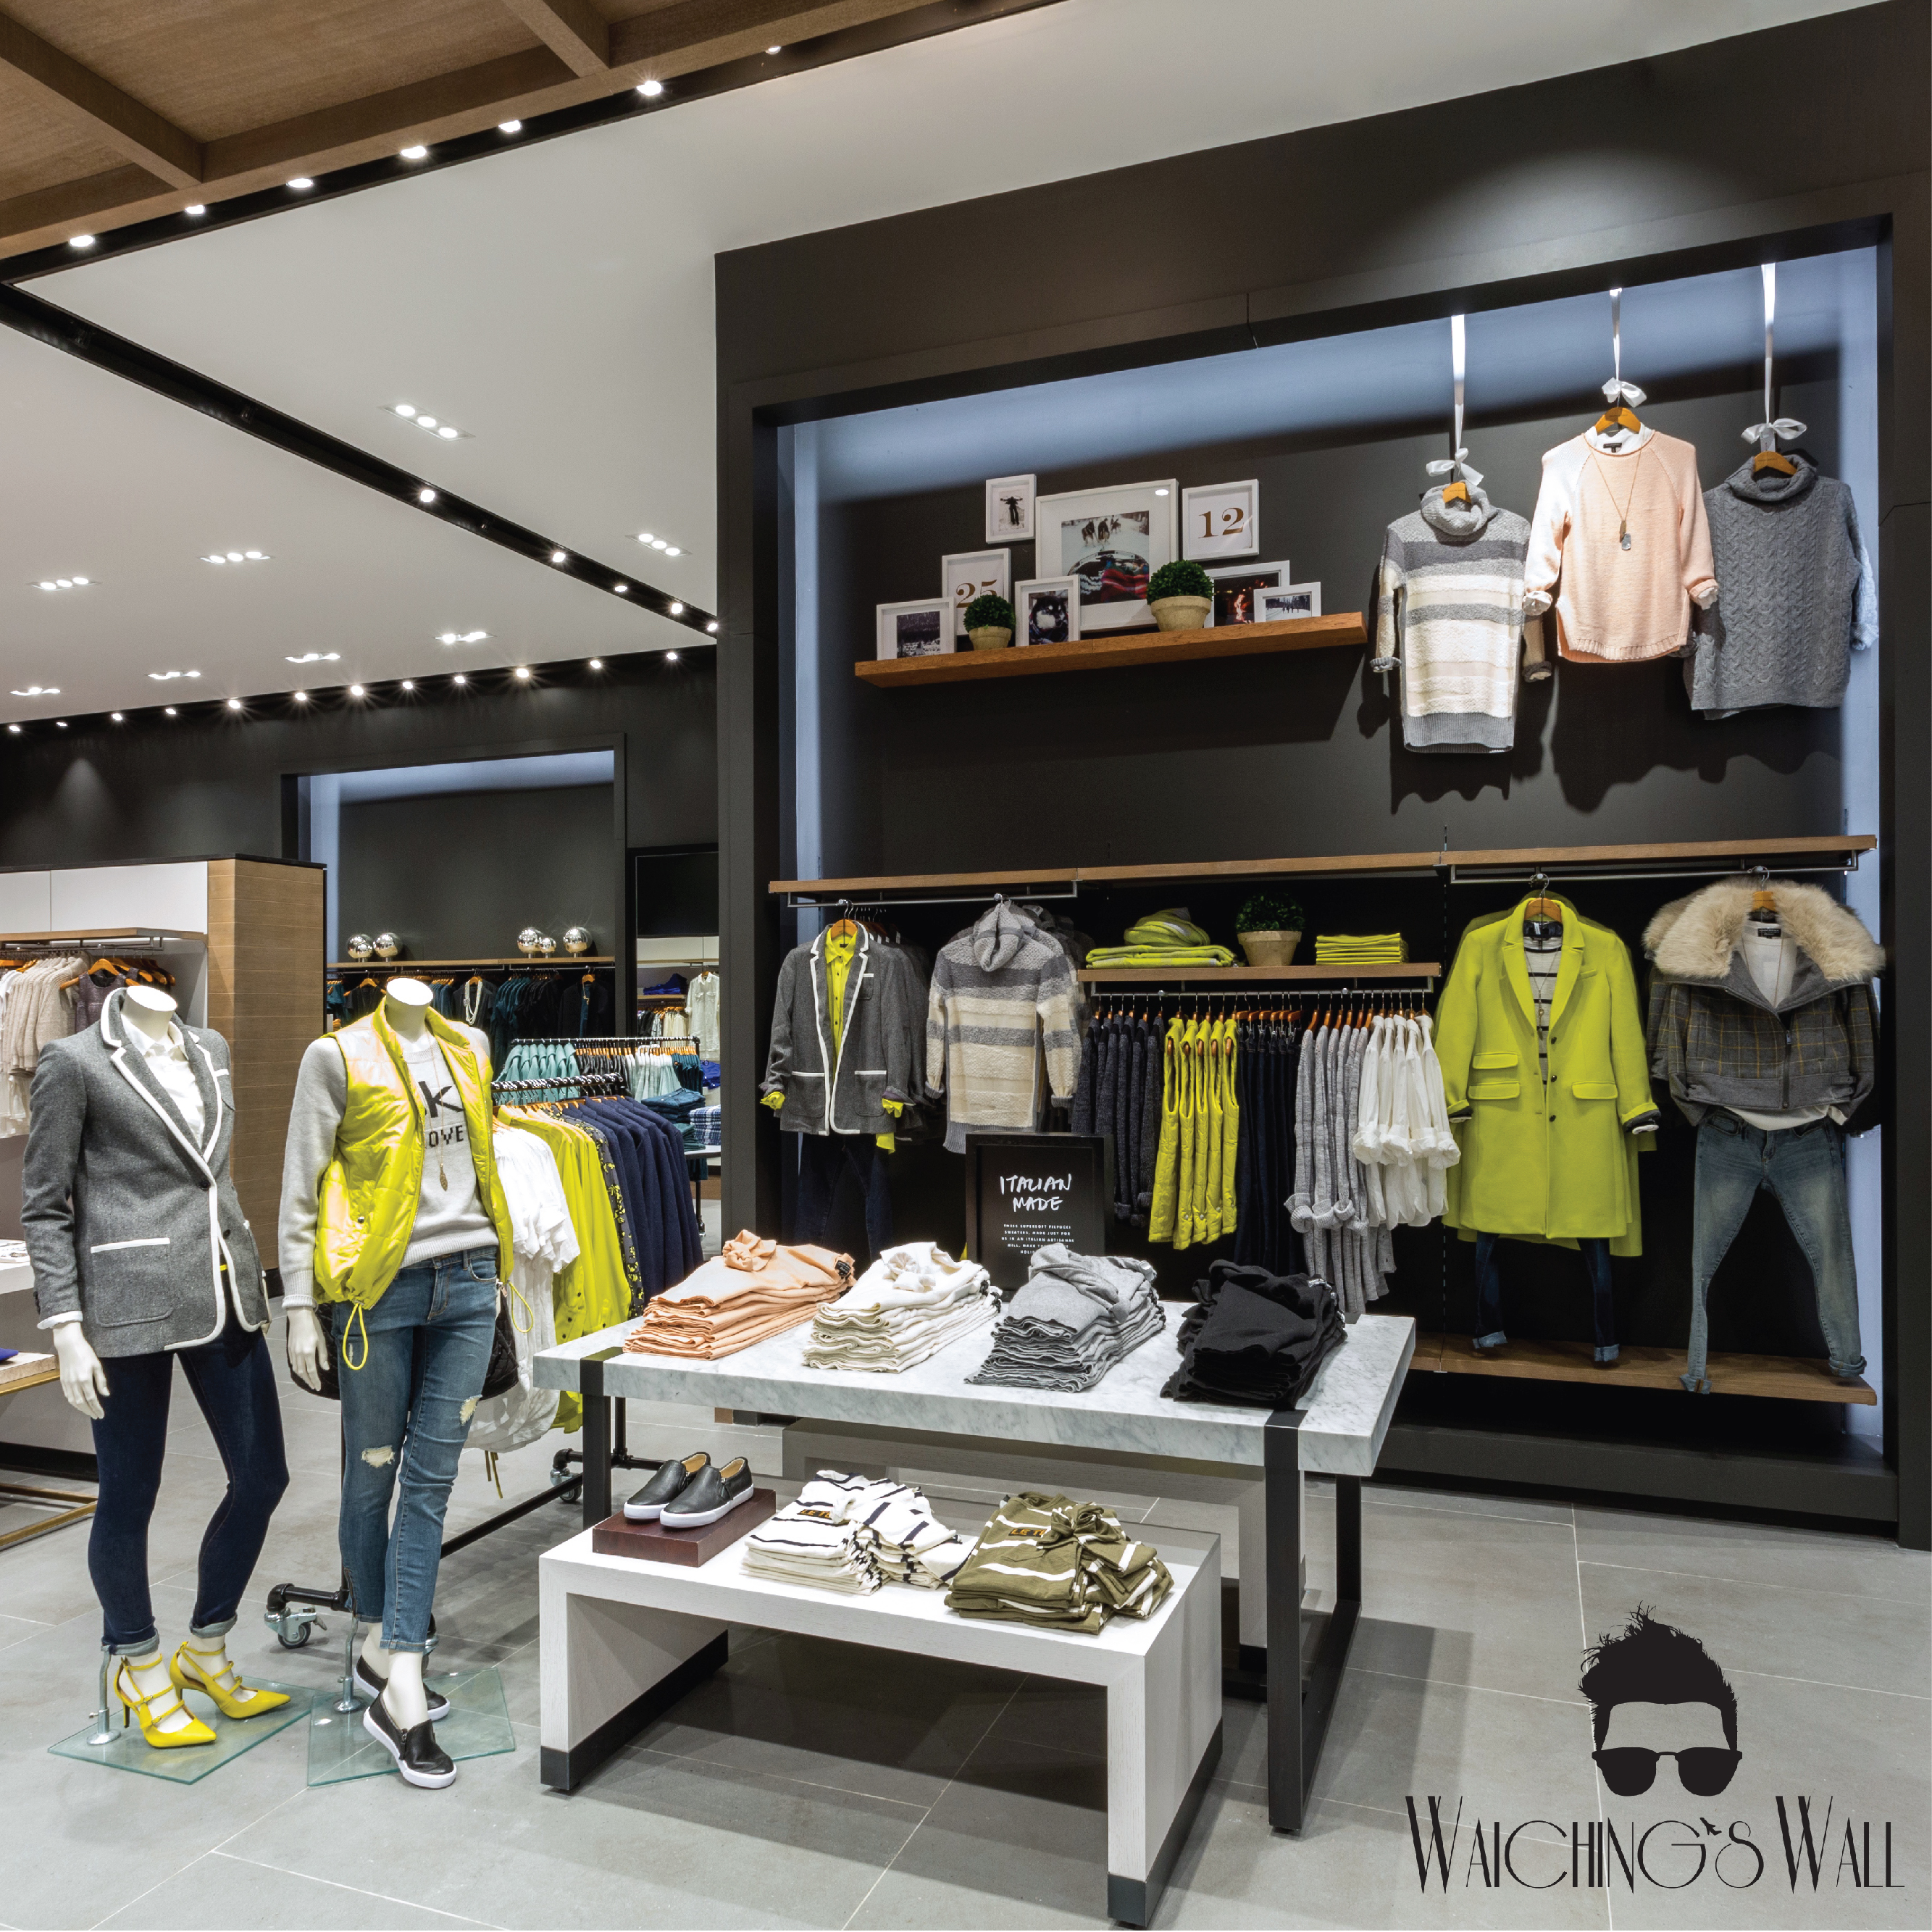 PRESS EVENT: BANANA REPUBLIC HOLIDAY'15 COLLECTION & REVAMPED DUBAI MALL STORE